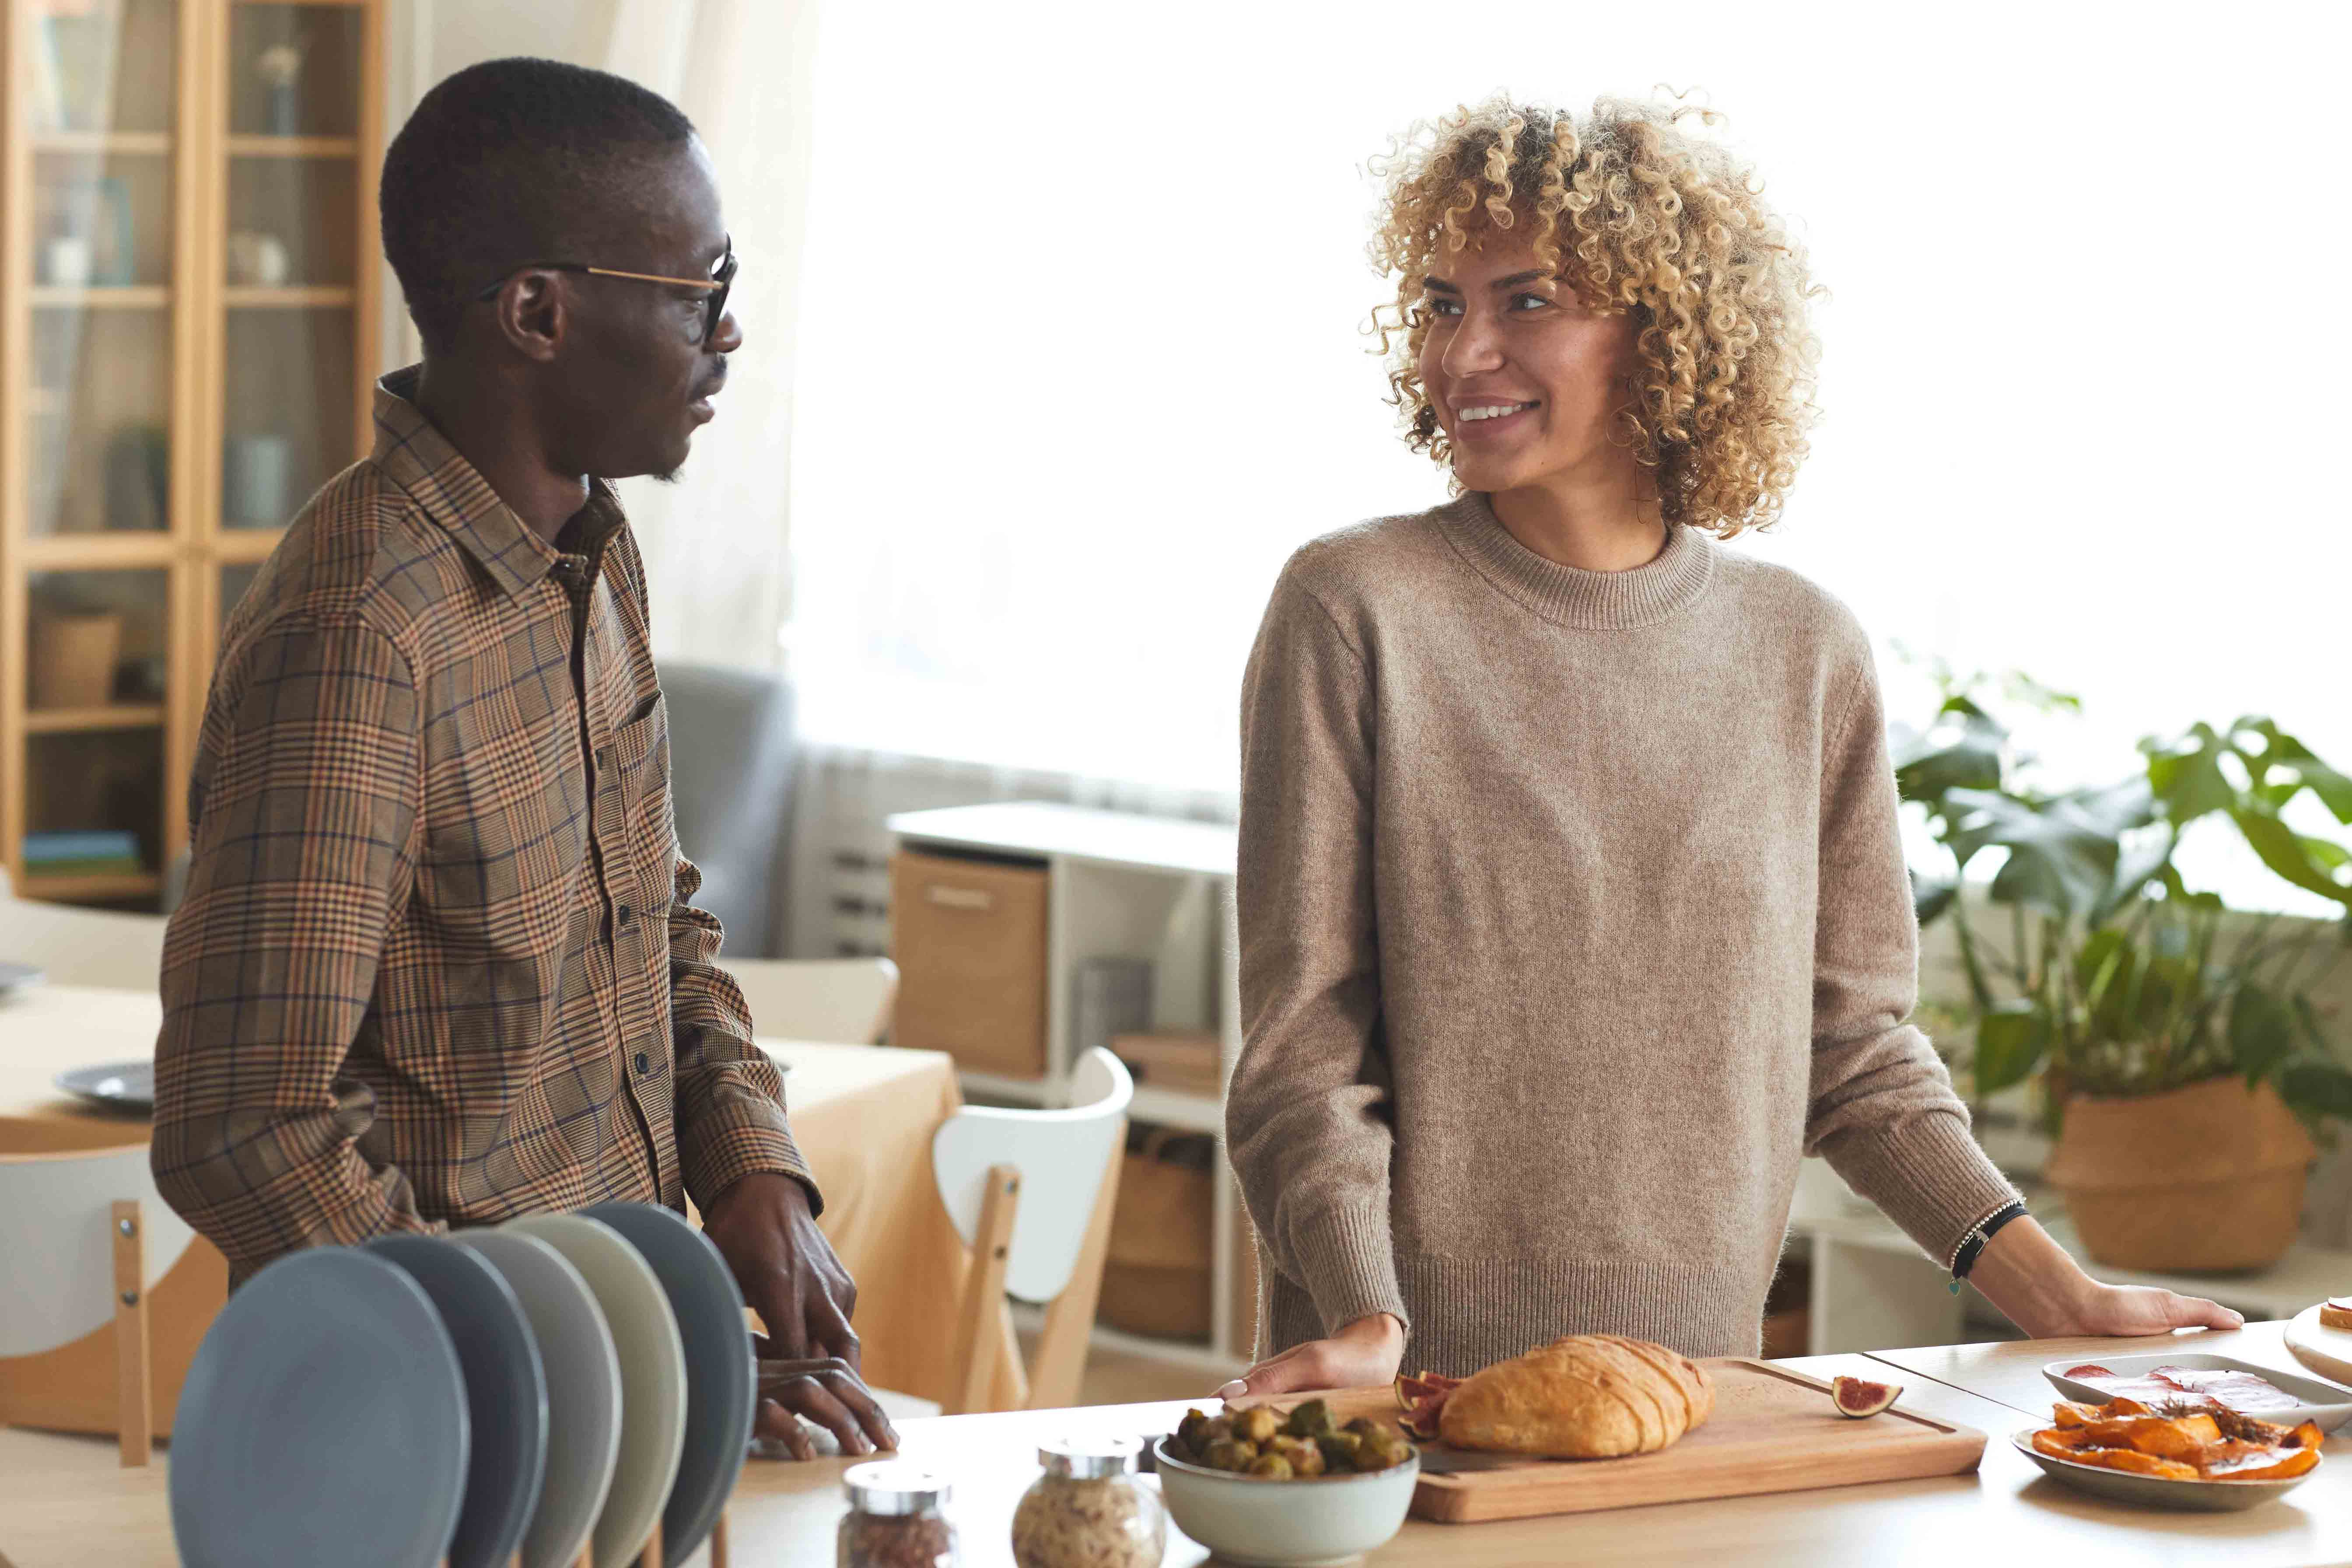 Interracial couple looking at each other in front of table with breakfast